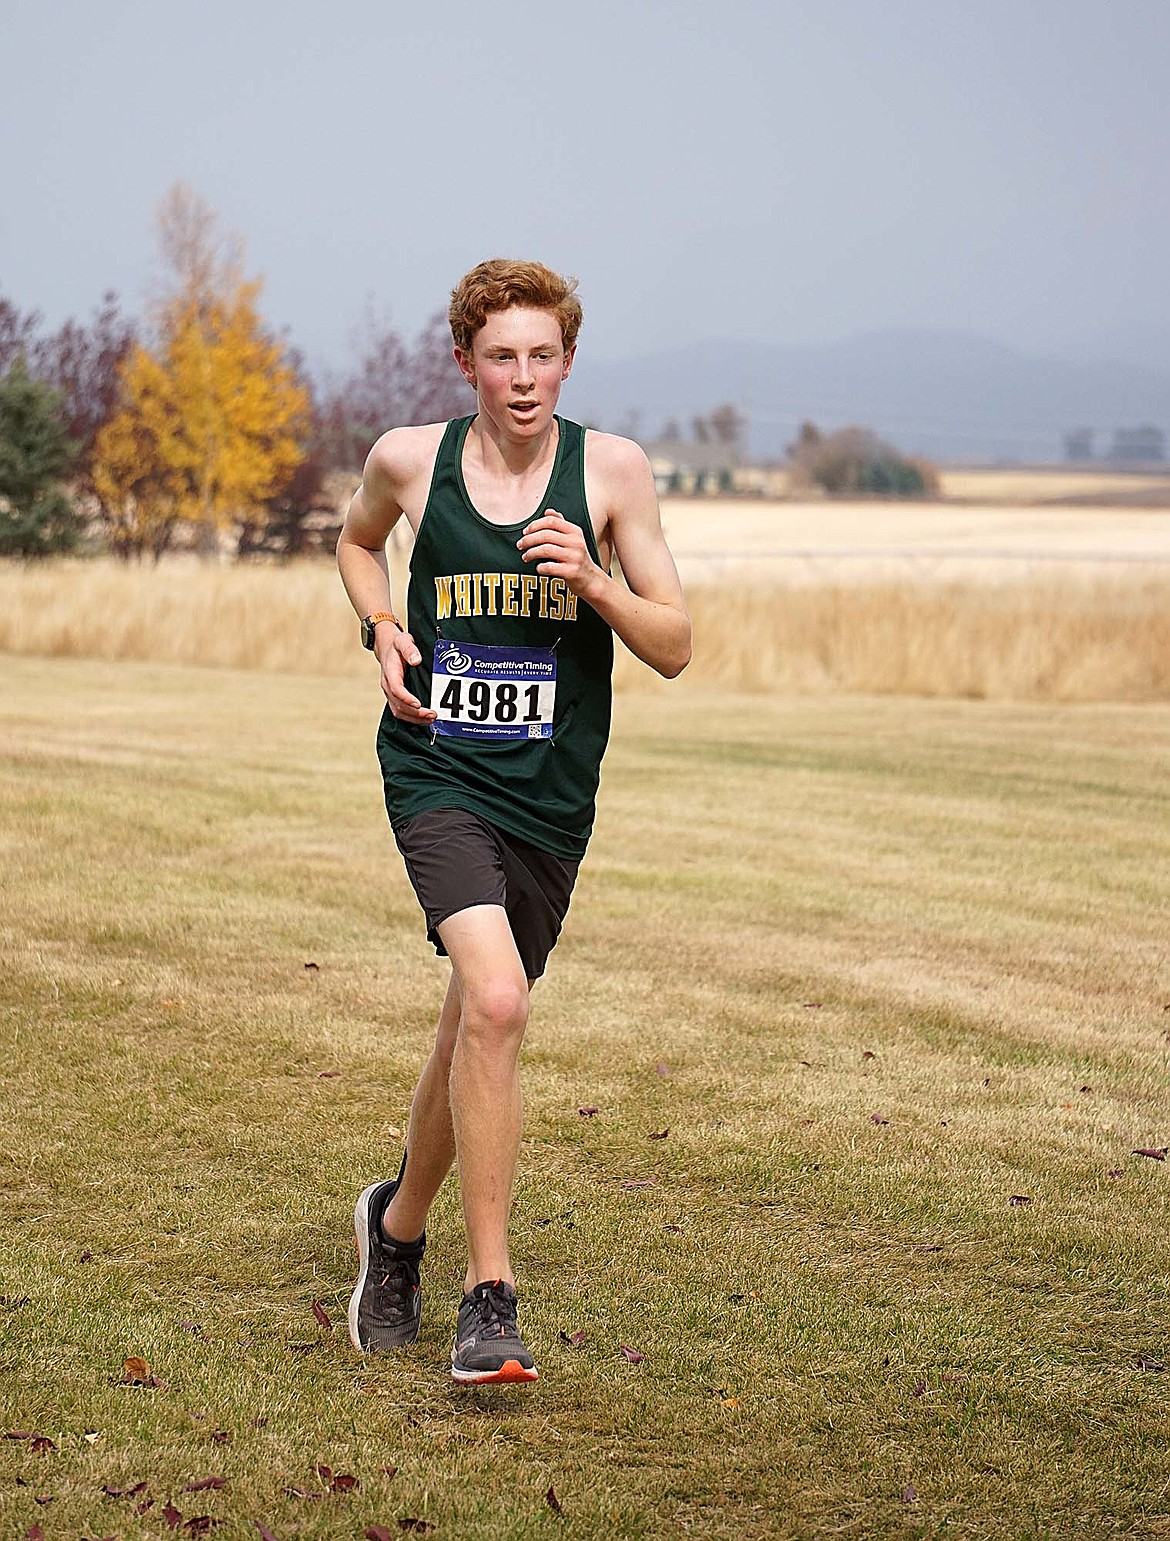 Bulldog Nate Inglefinger finished with a time of 18:43.58 Saturday during the cross country meet at Rebecca Farm. (Matt Weller photo)